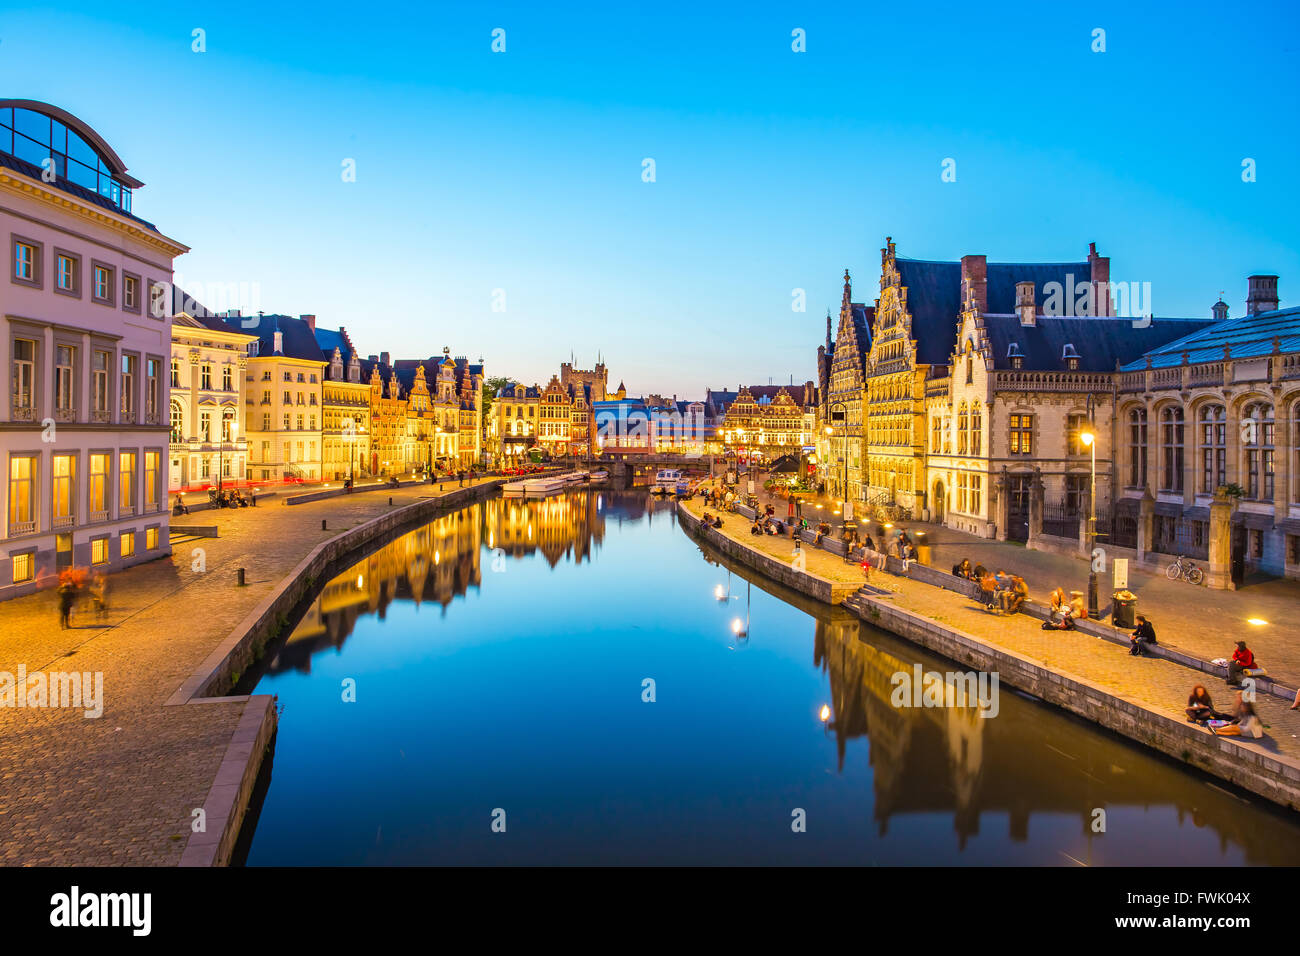 Night at Ghent canal in Belgium. - Stock Image